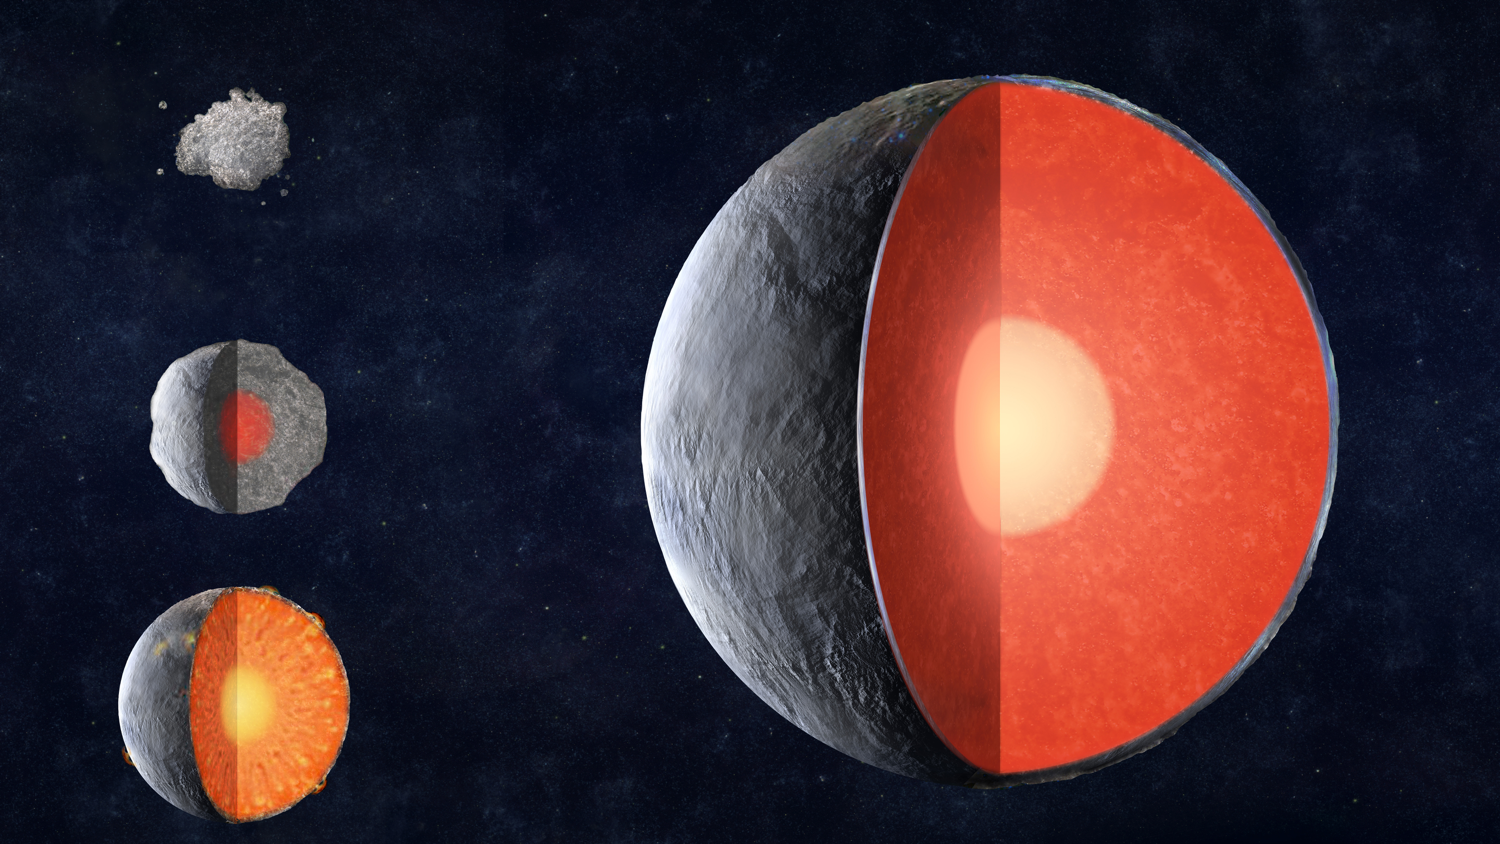 A rocky planet forms by gathering material, which separates into layers as it cools, ultimately forming a crust, mantle and core.